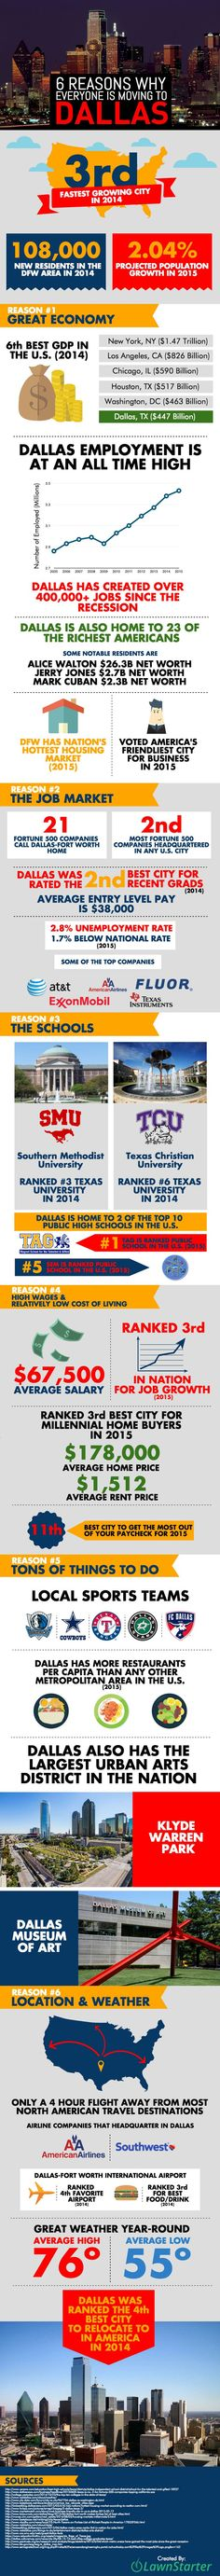 6 Reasons Why Everyone Is Moving To Dallas Texas by Lawnstarter: